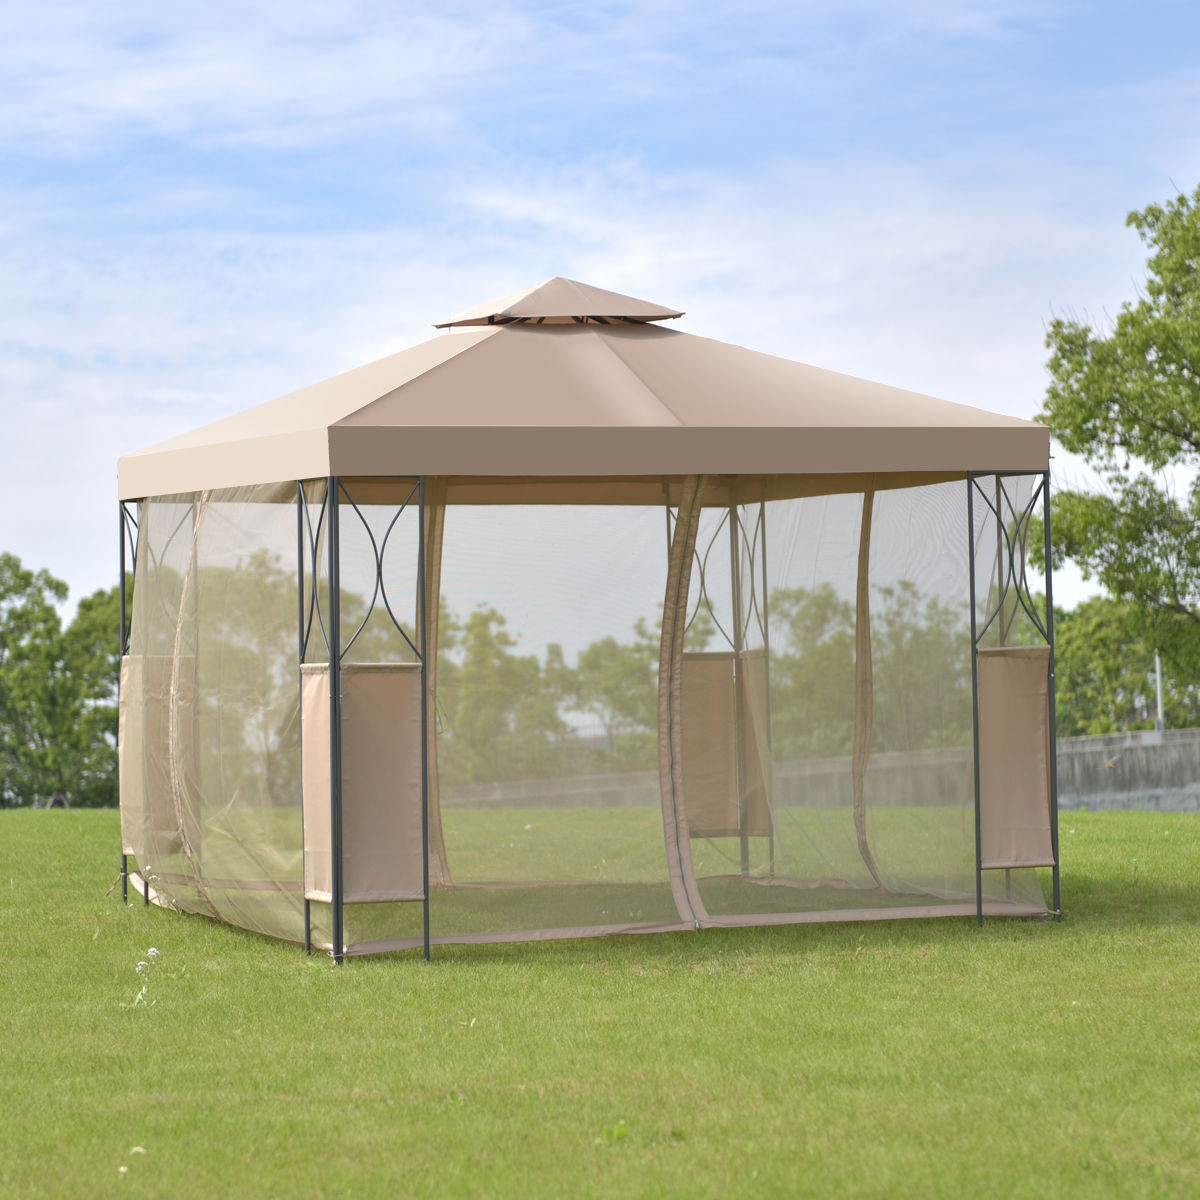 Costway 2-Tier 10'x10' Gazebo Canopy Tent Shelter Awning Steel Patio Garden Brown Cover by Costway